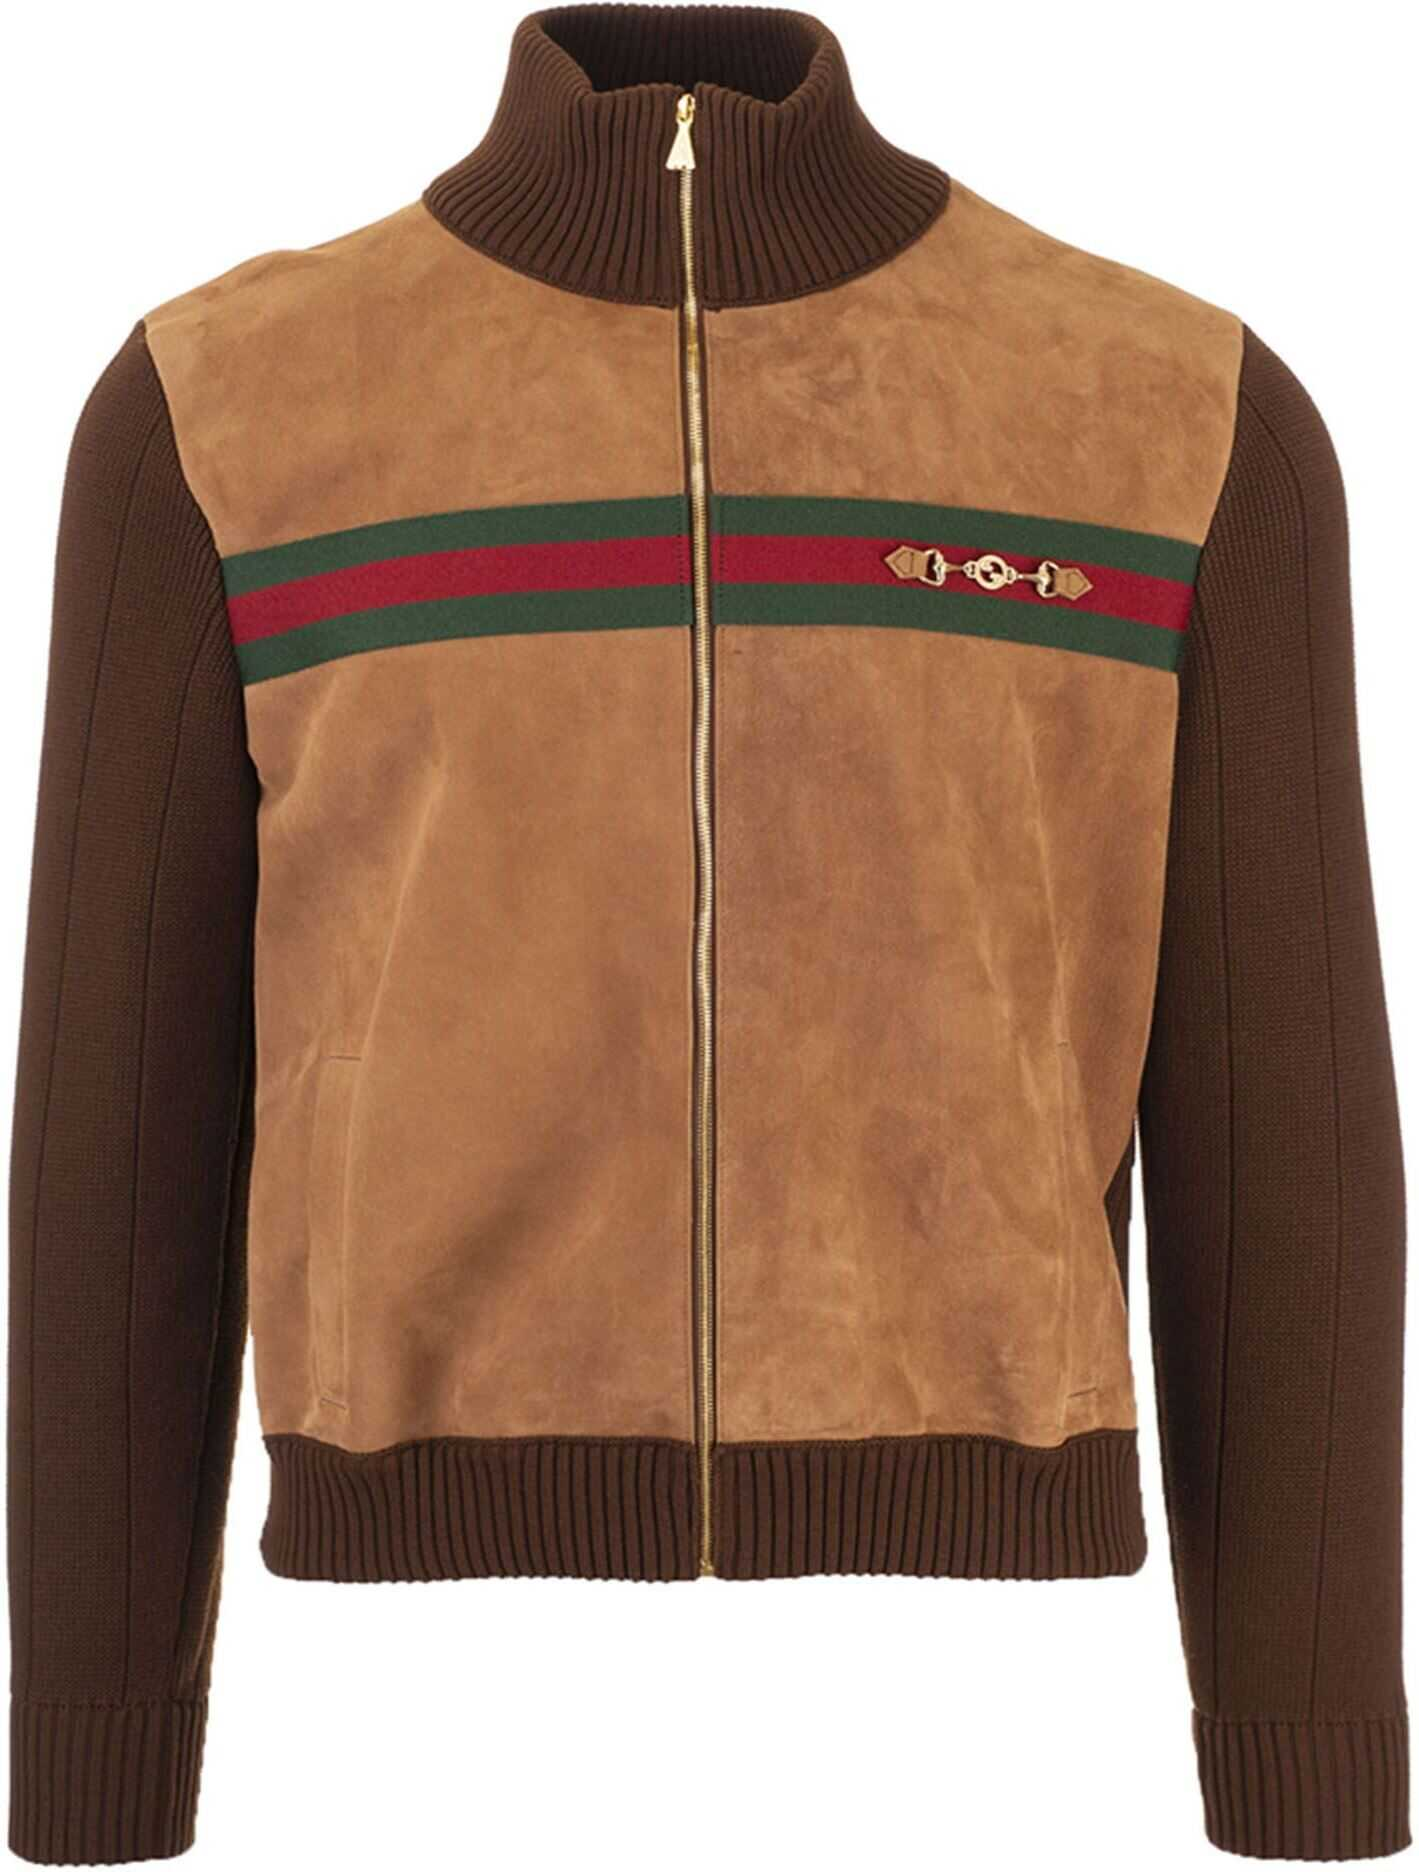 Gucci Web Bomber And Horsebit In Brown And Beige Brown imagine